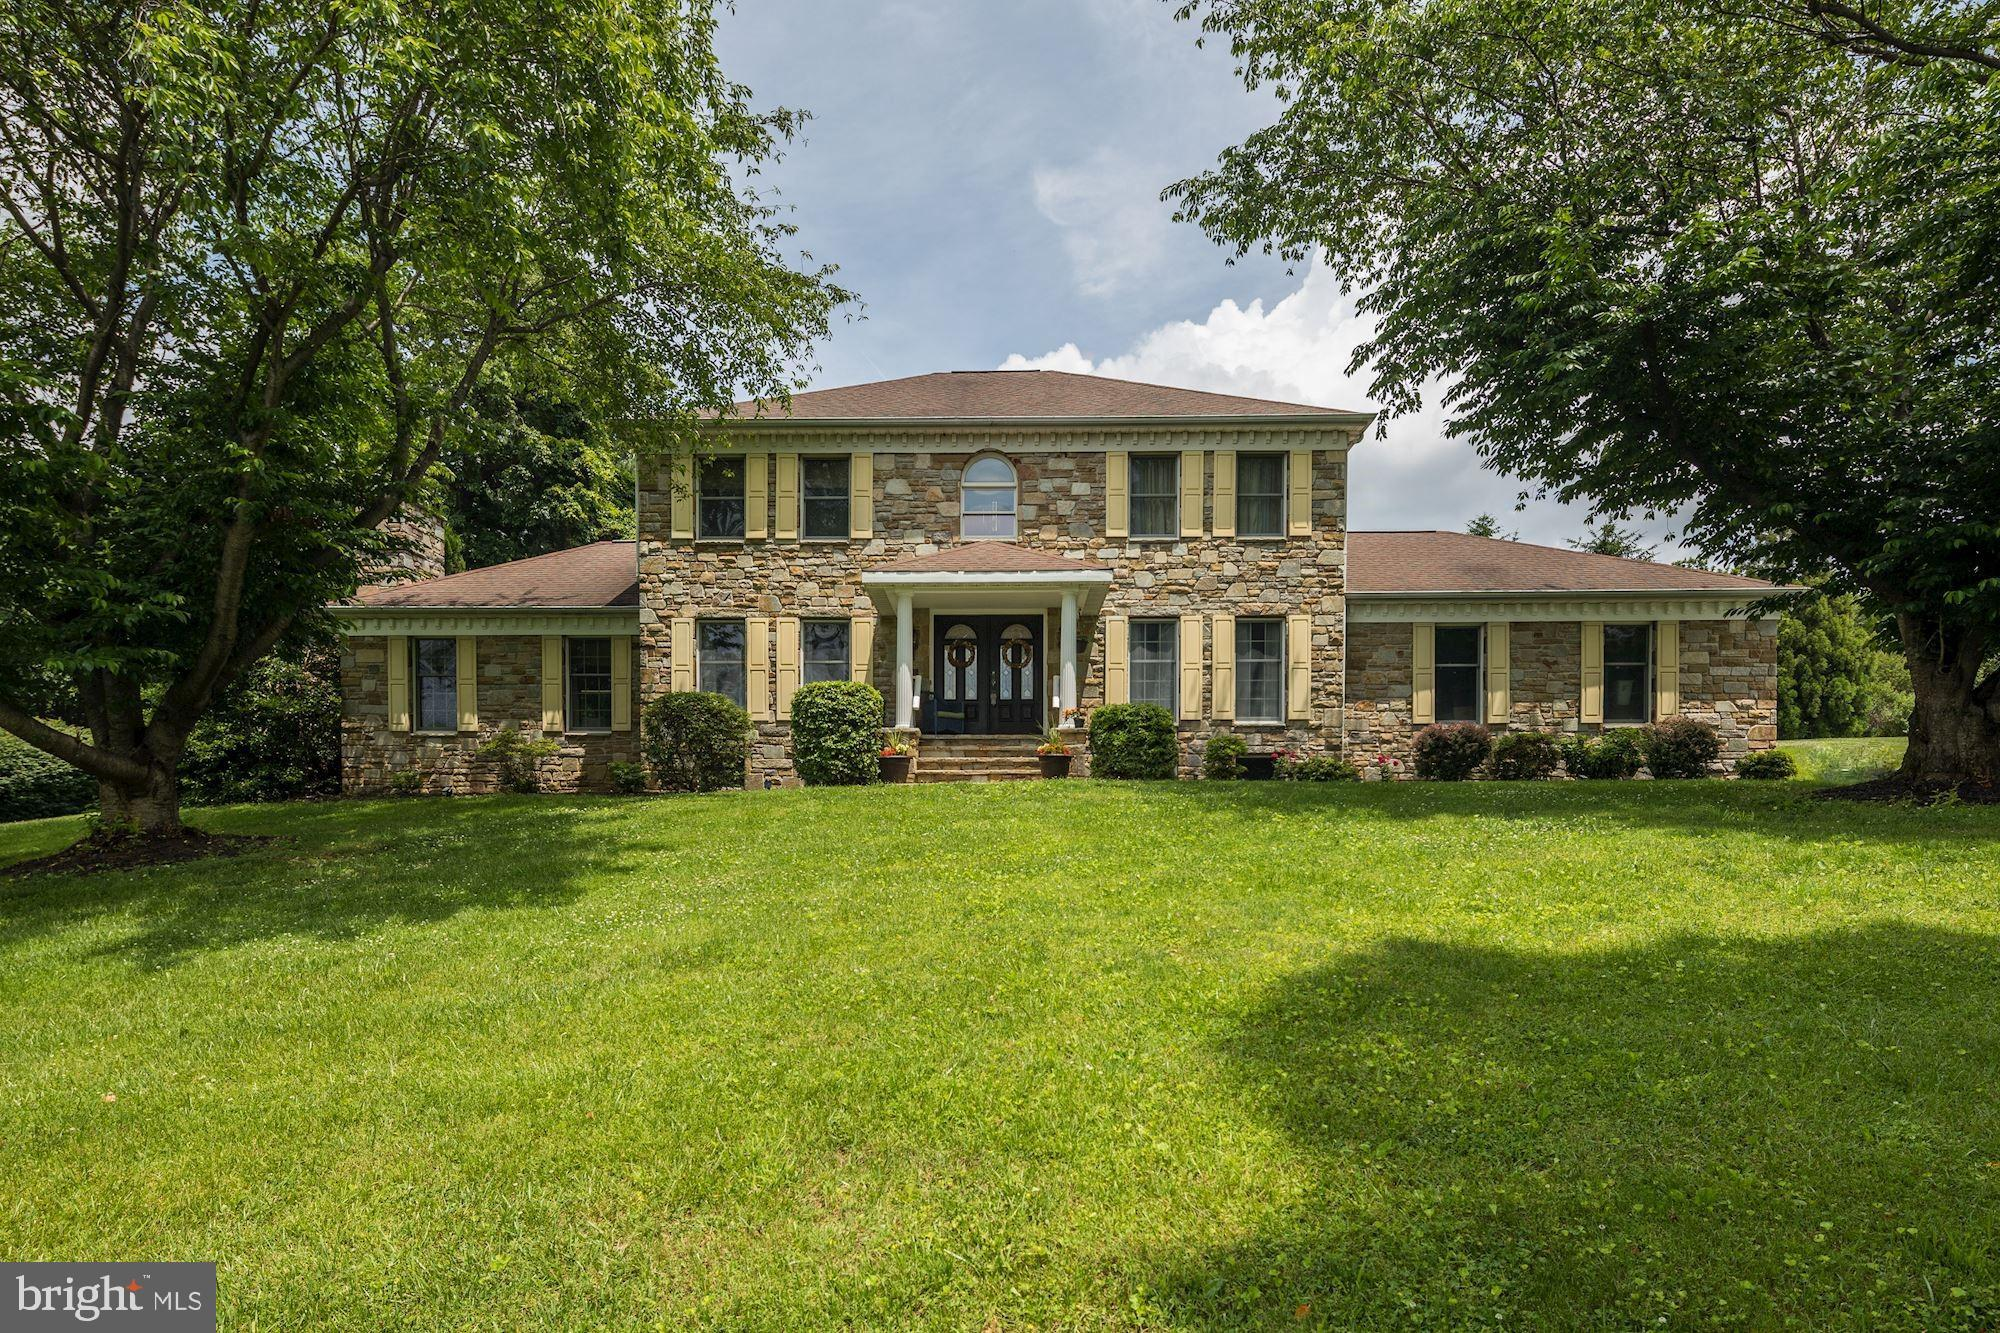 1401 Waterford Dr, Bel Air, MD, 21015